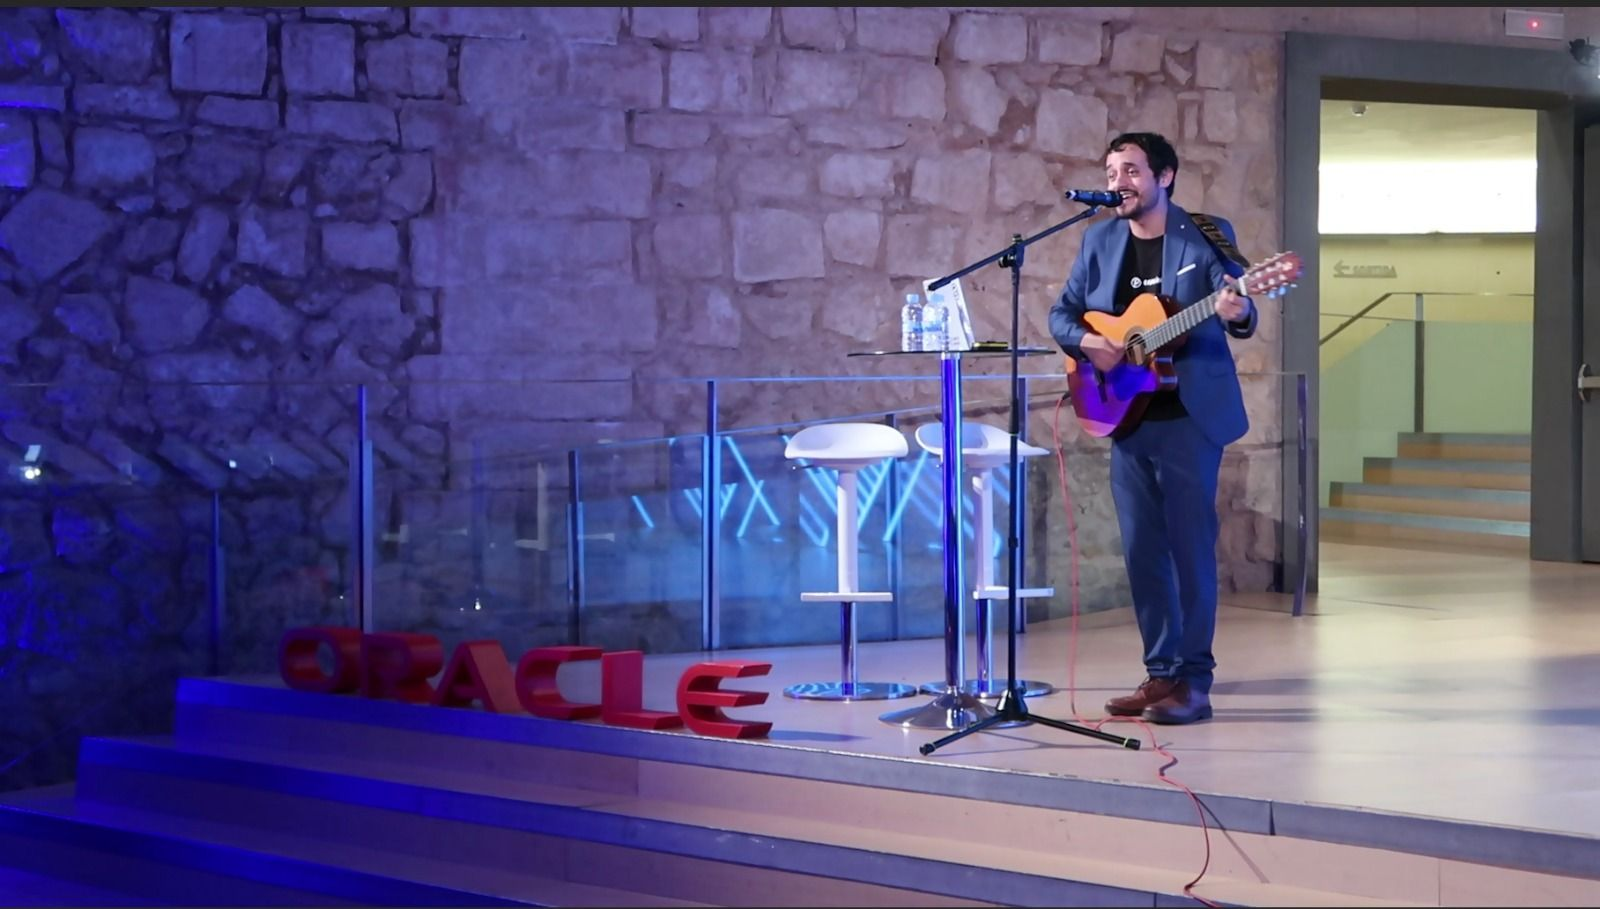 Aldo Narejos en un evento de ORACLE.